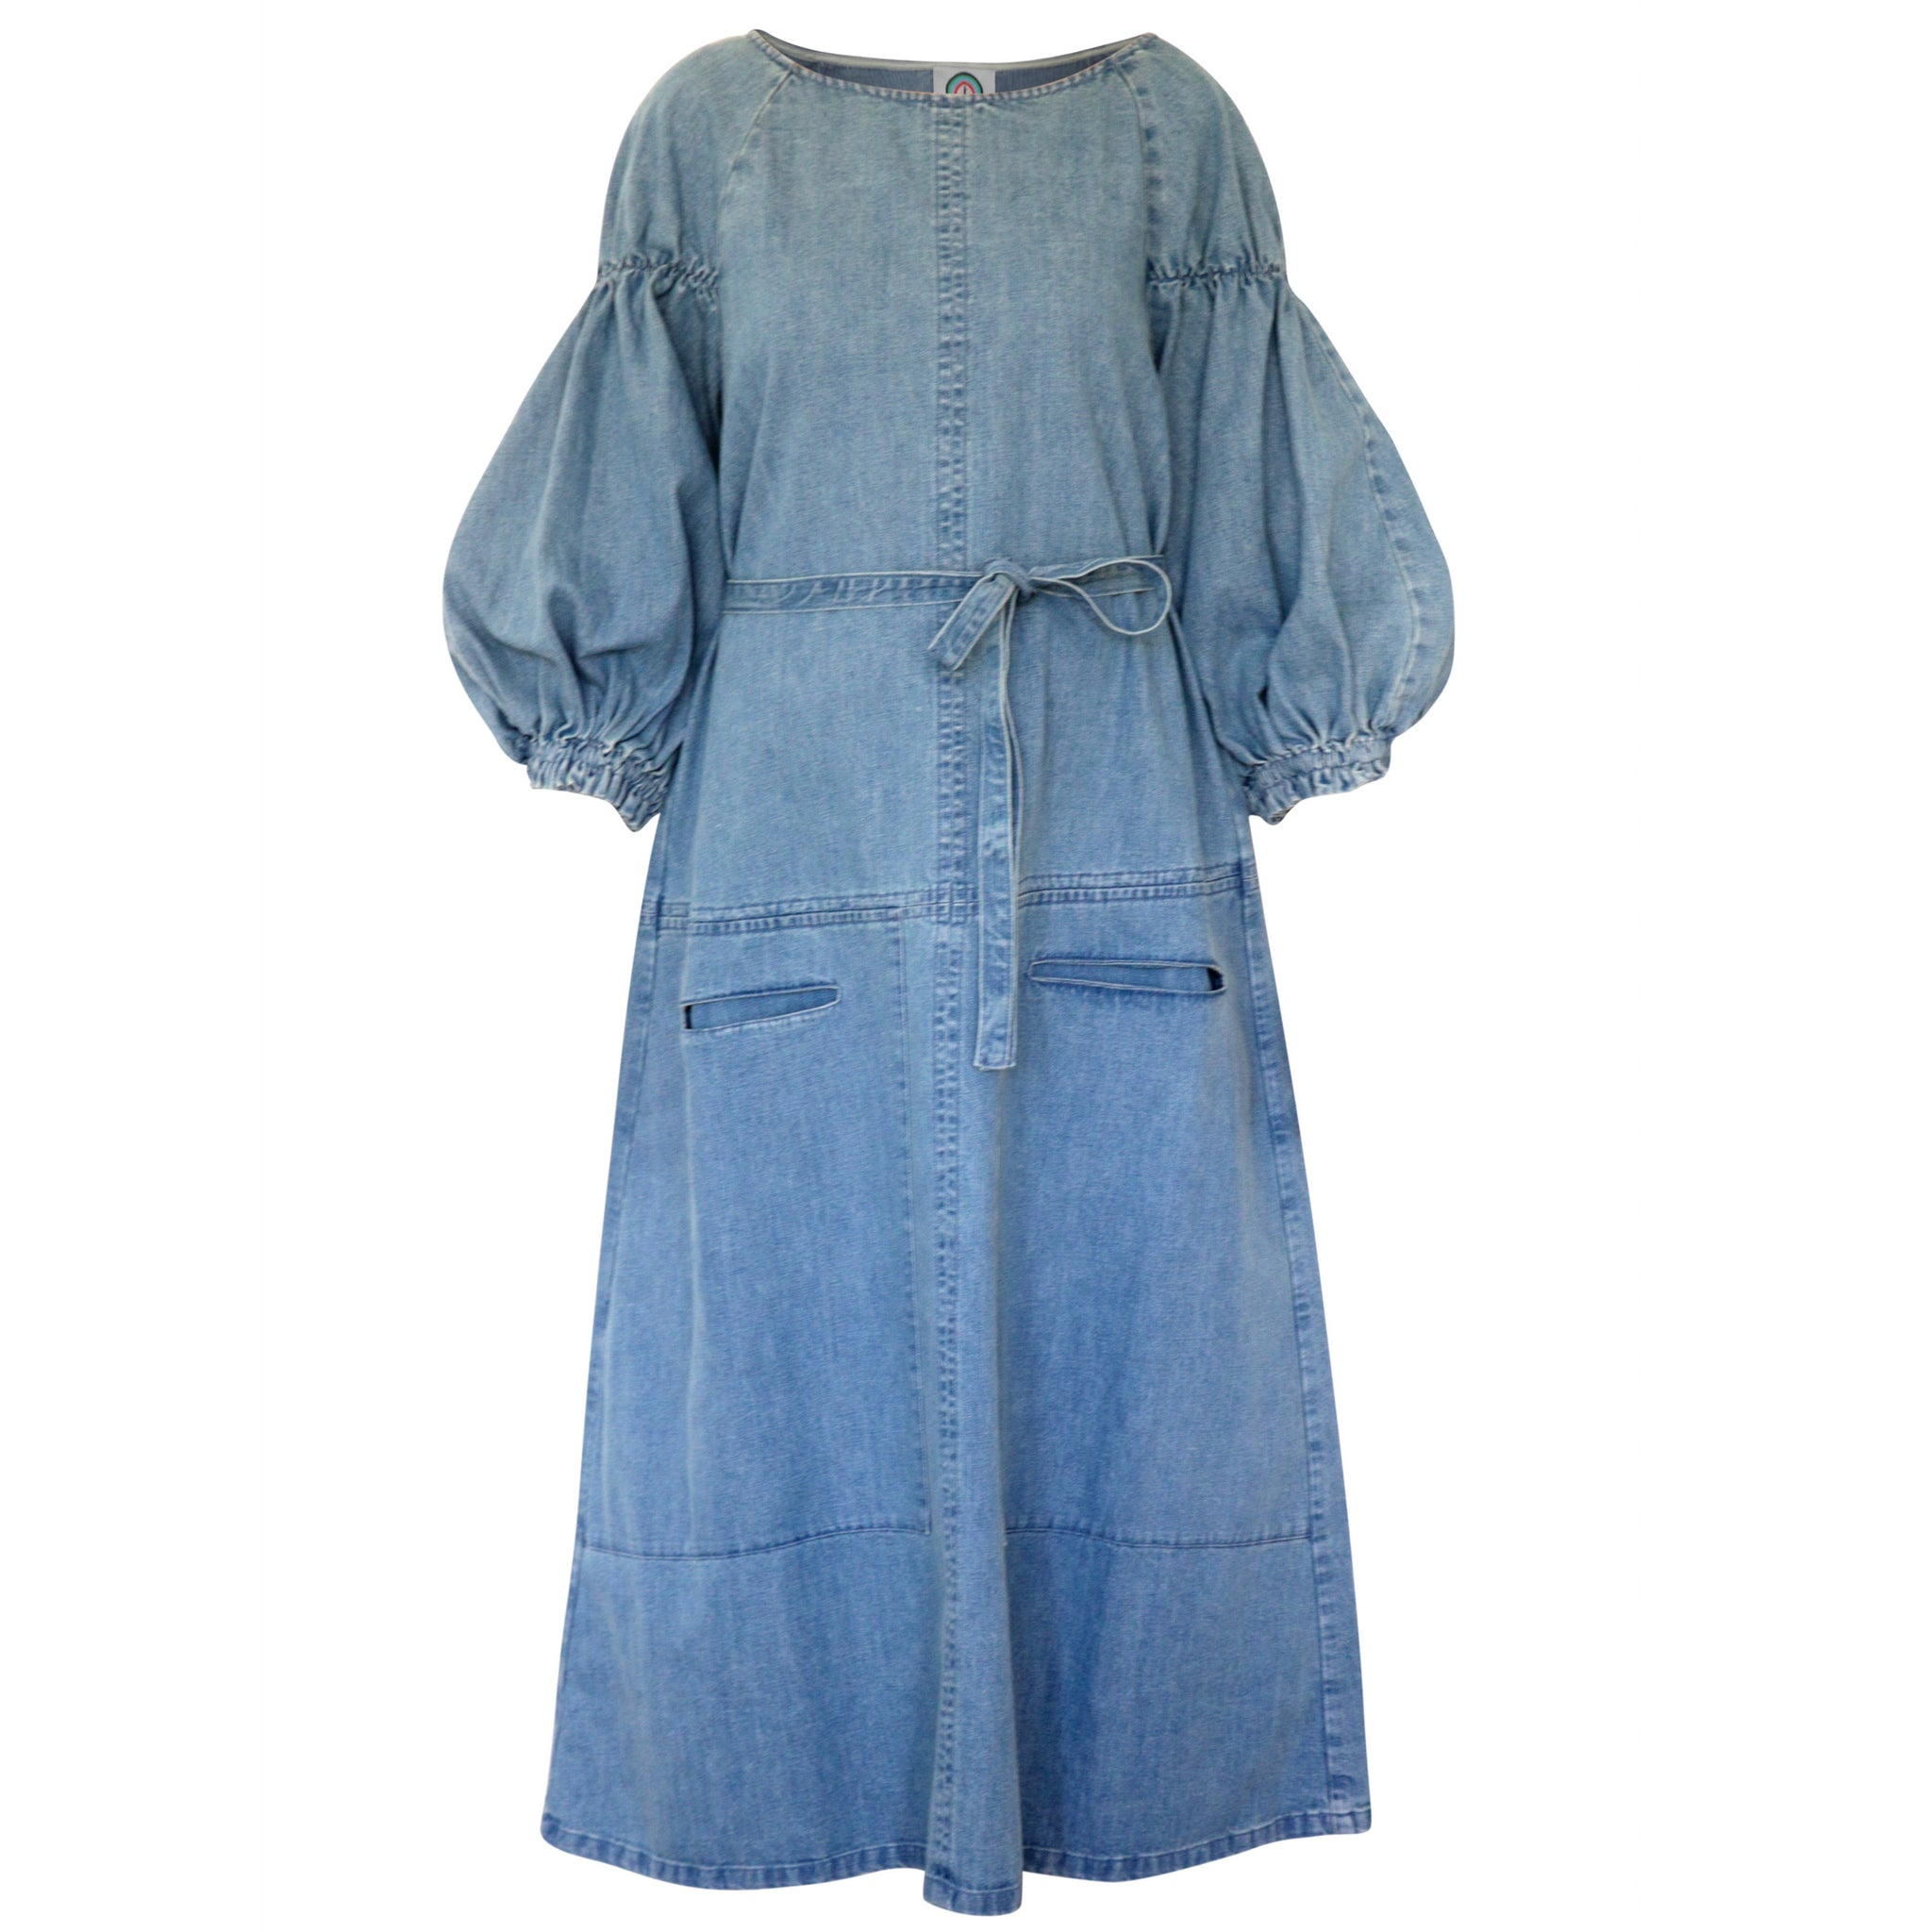 Denim dress with Balloon sleeve